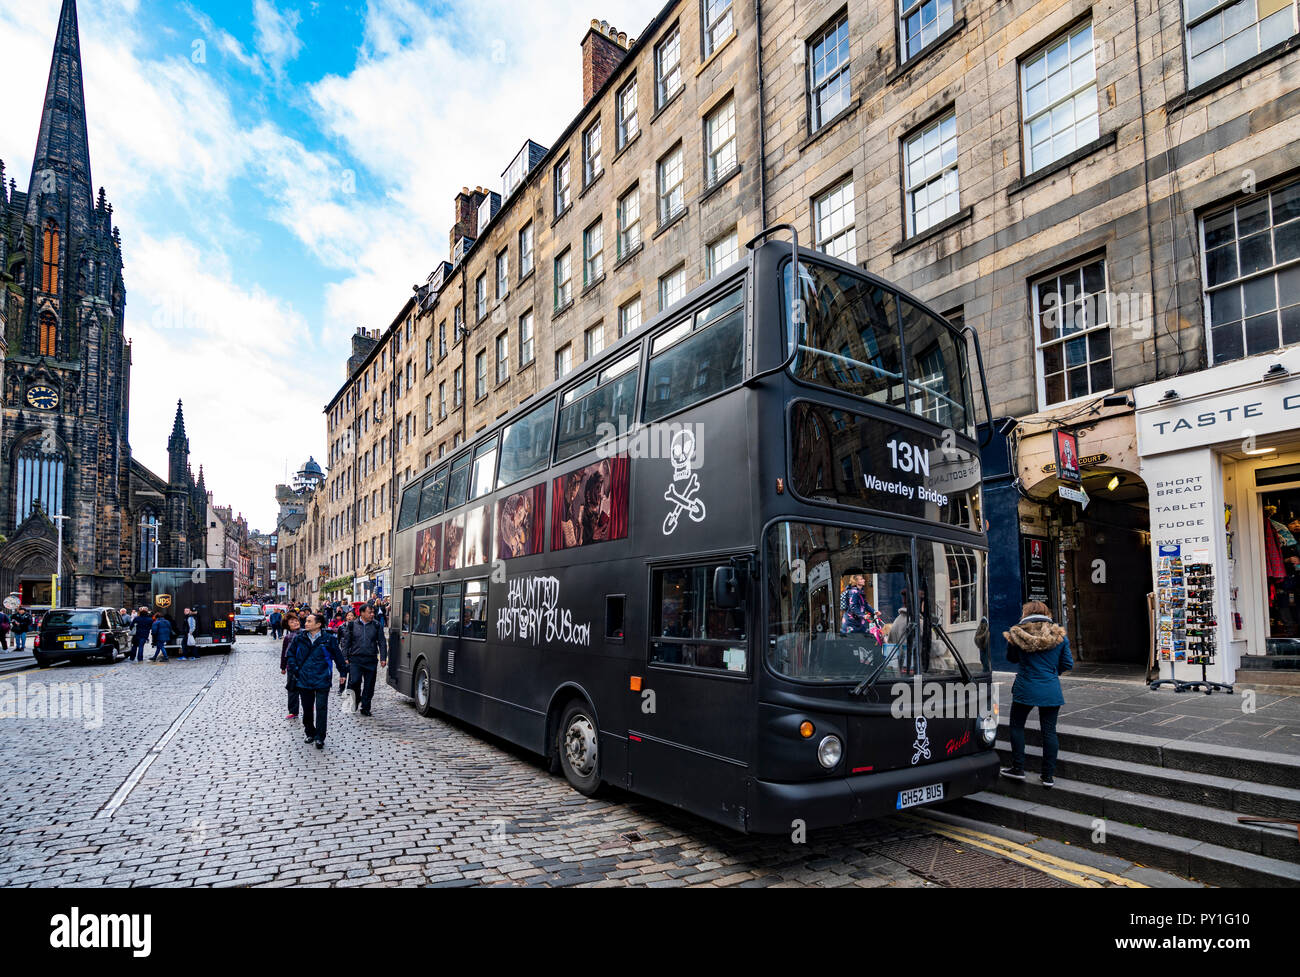 Tourist ghost tour bus parked on the Royal Mile in Edinburgh Old Town, Scotland, UK. - Stock Image